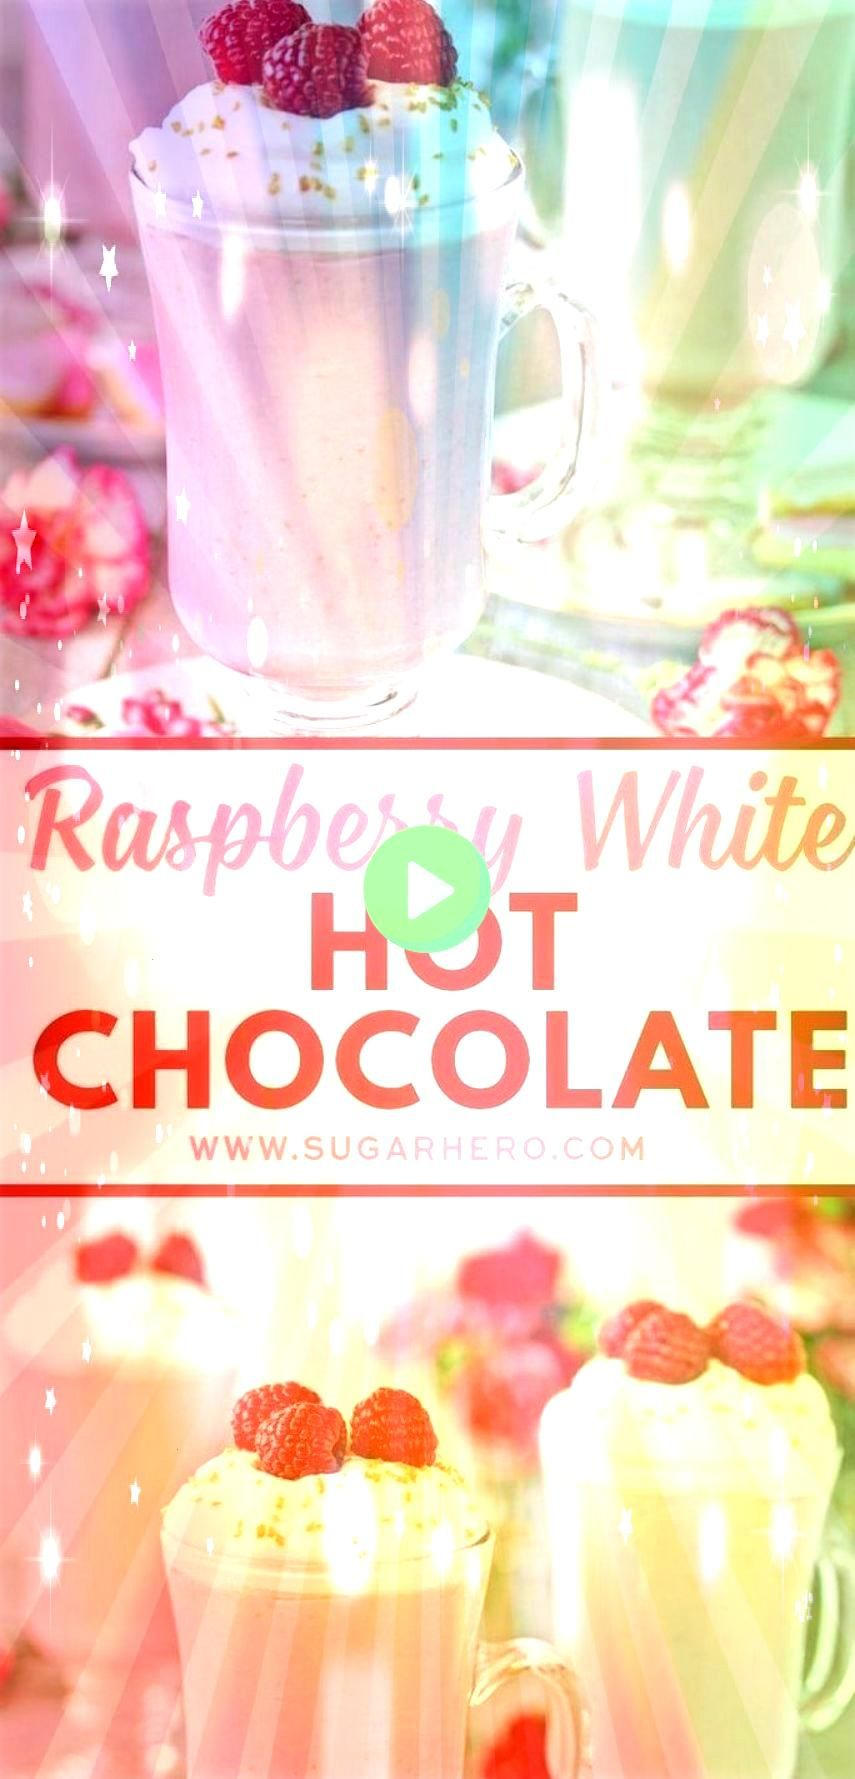 Hot Chocolate is a pretty pink twist on traditional hot chocolate Its made with white chocolate and real raspberry puree for a fresh fruity taste that is perfect yearroun...